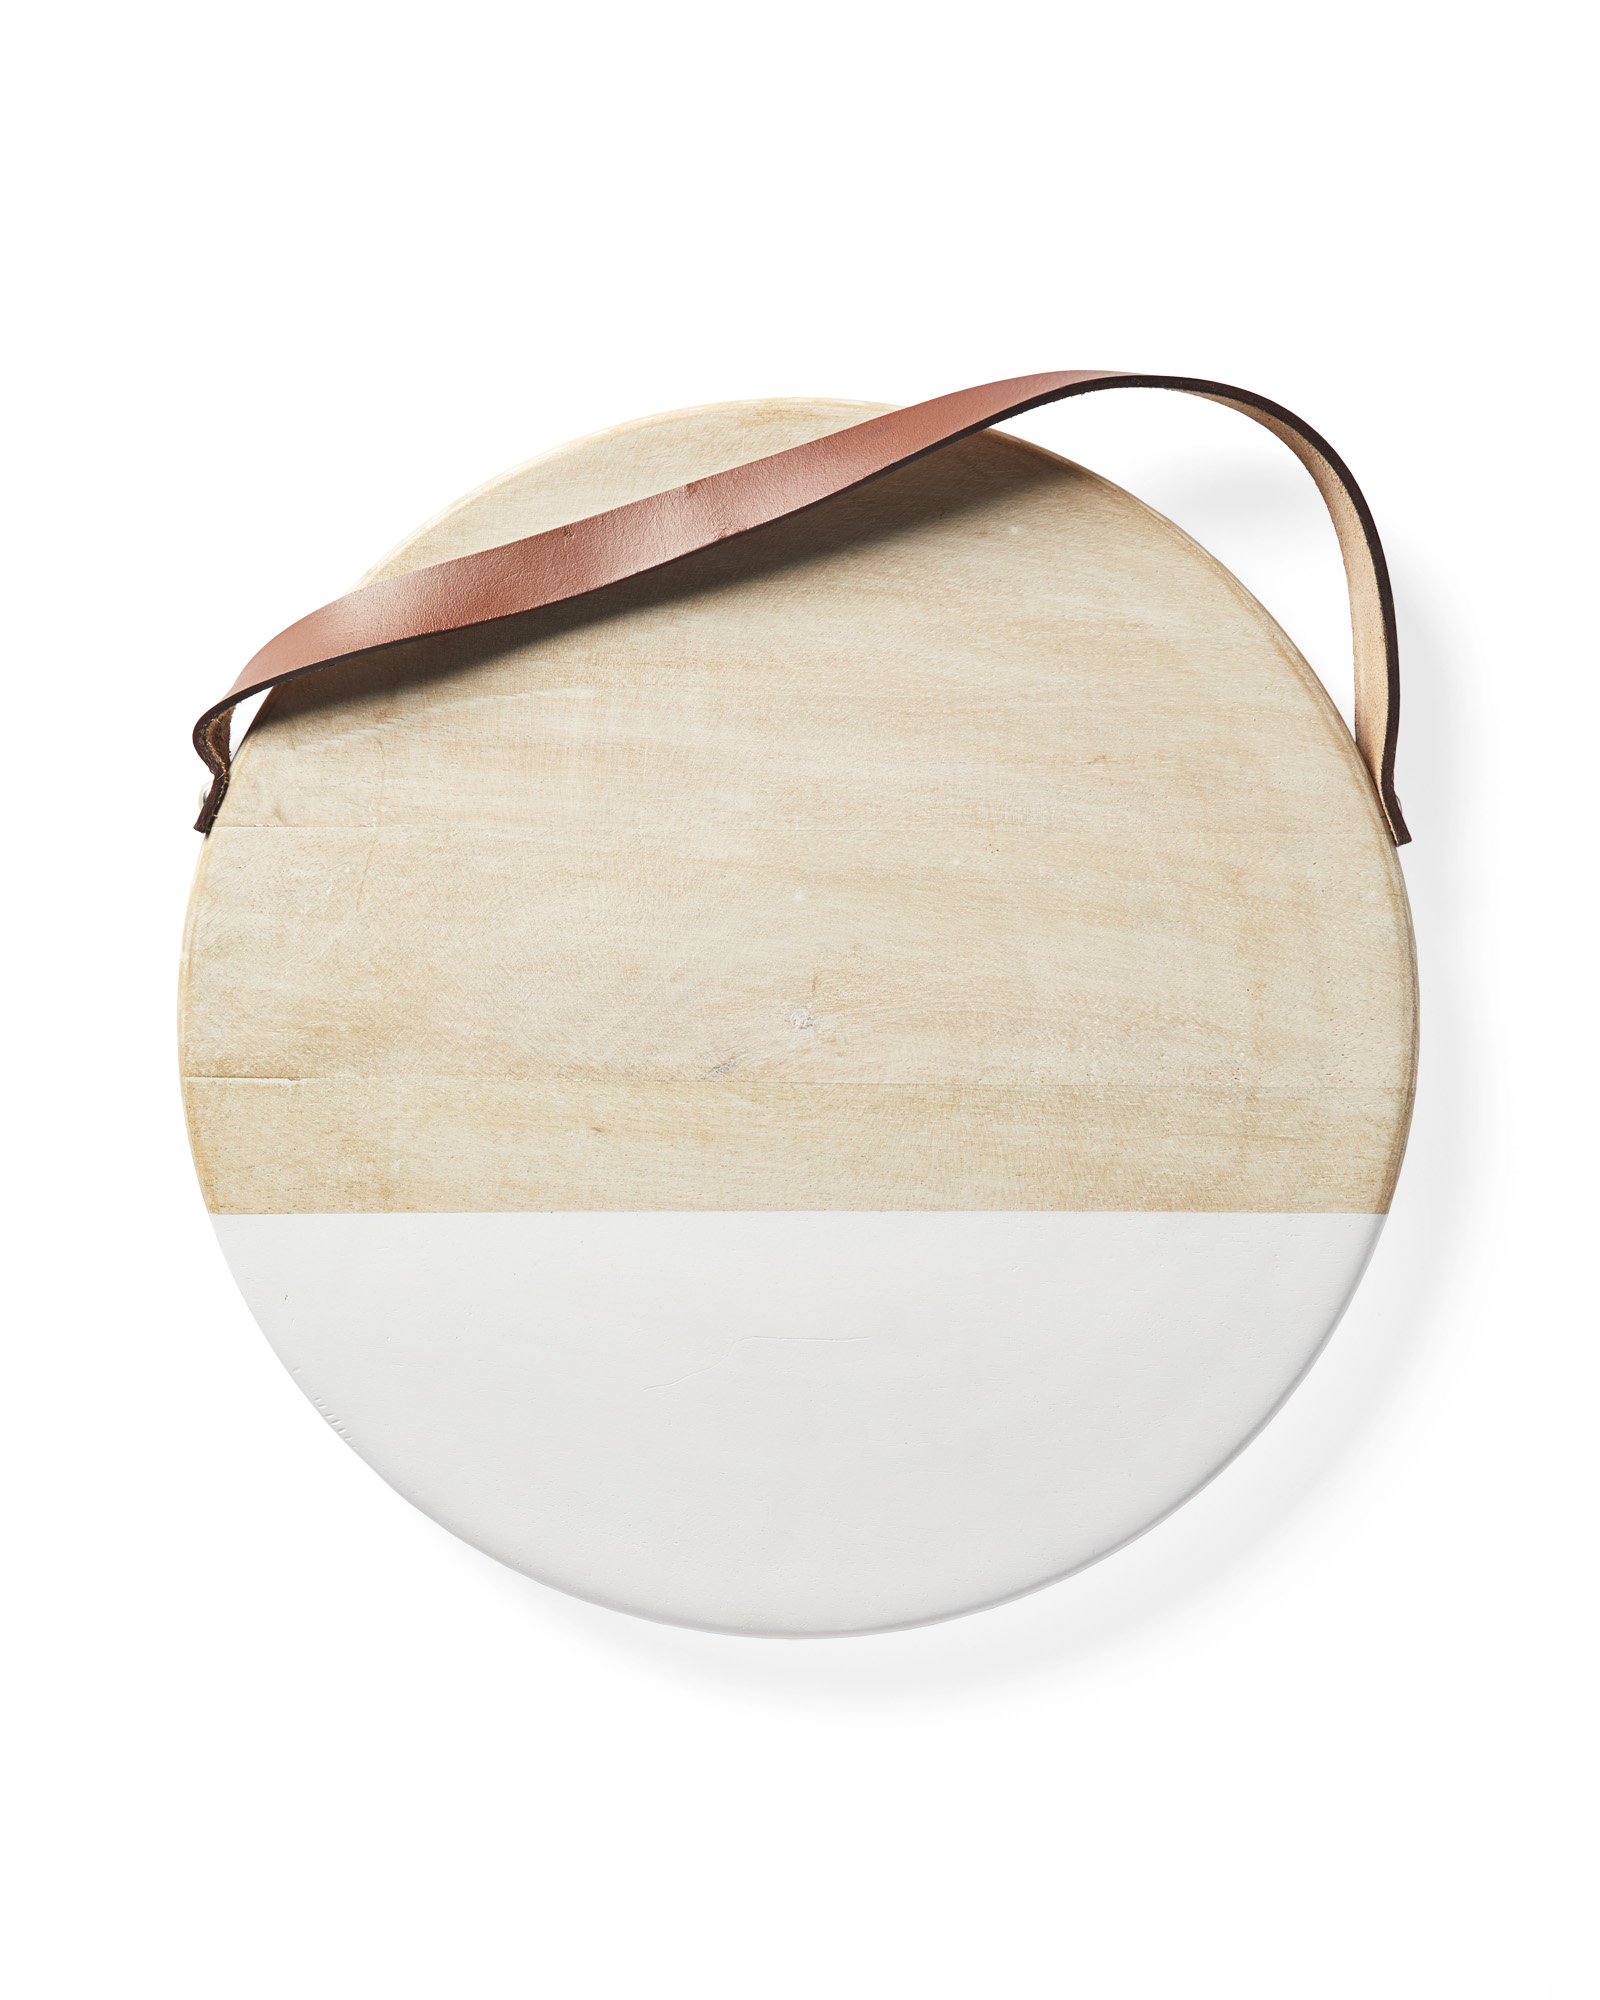 Beachside Serving Board,